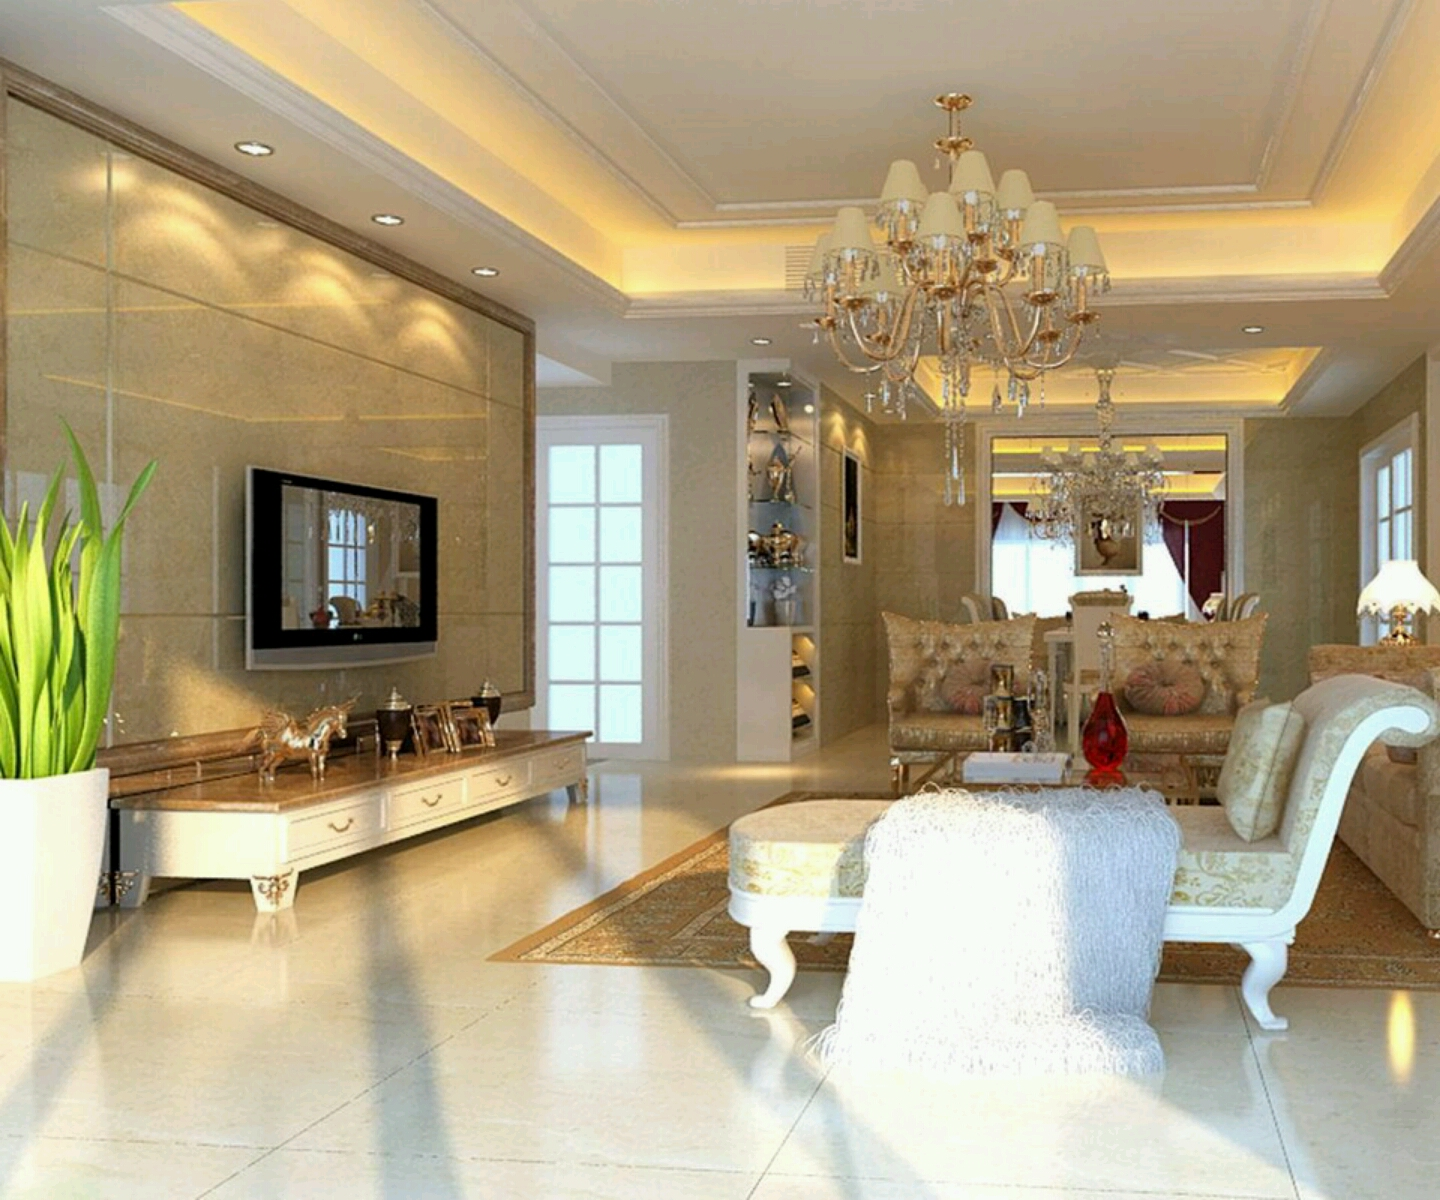 New home designs latest luxury homes interior decoration for House interior design ideas